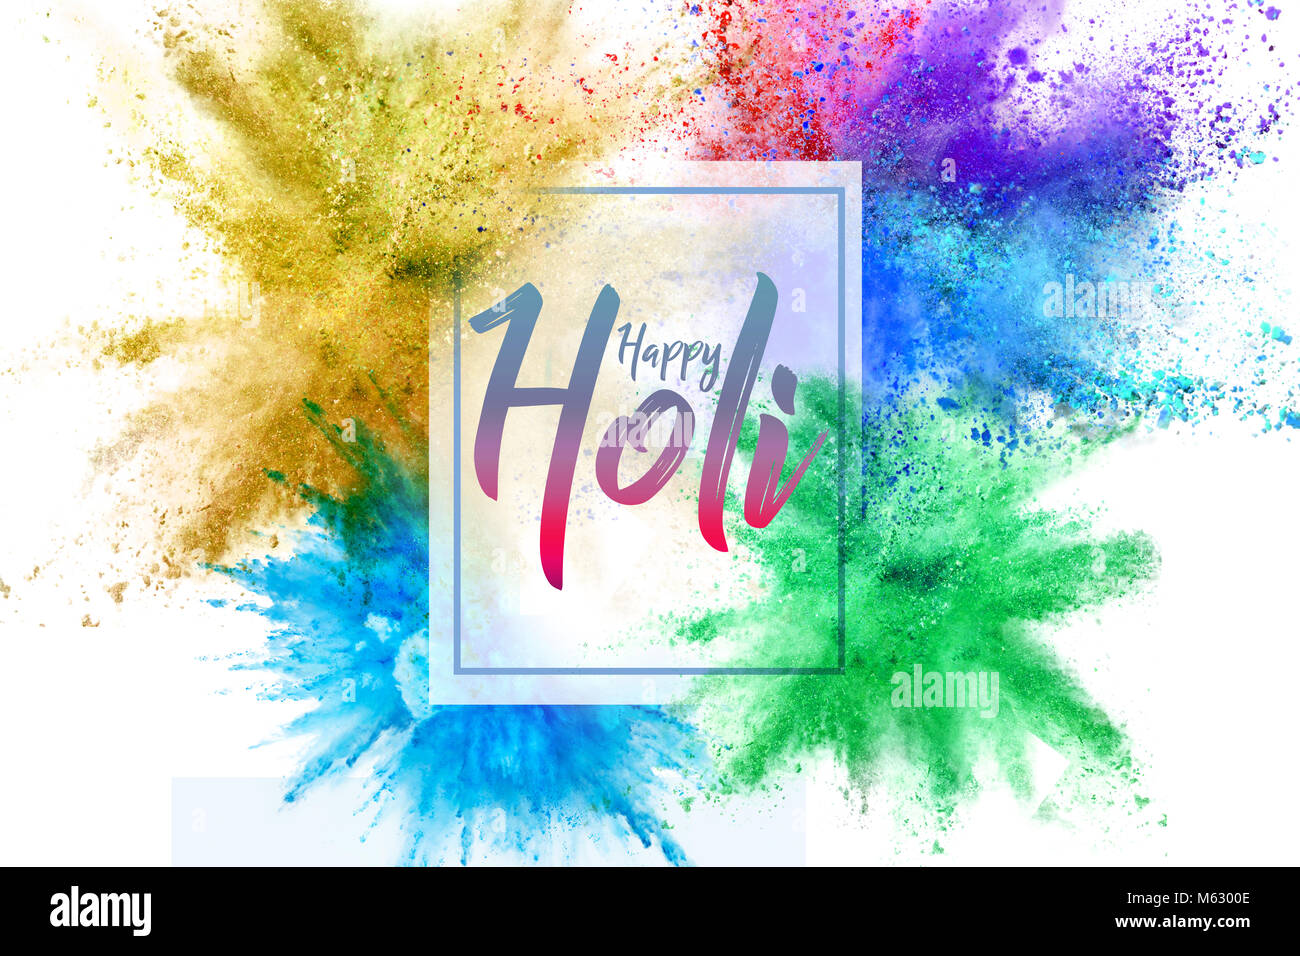 Happy holi festival colors greeting stock photos happy holi holi festival of colors abstract multi color powder explosion stock image kristyandbryce Image collections